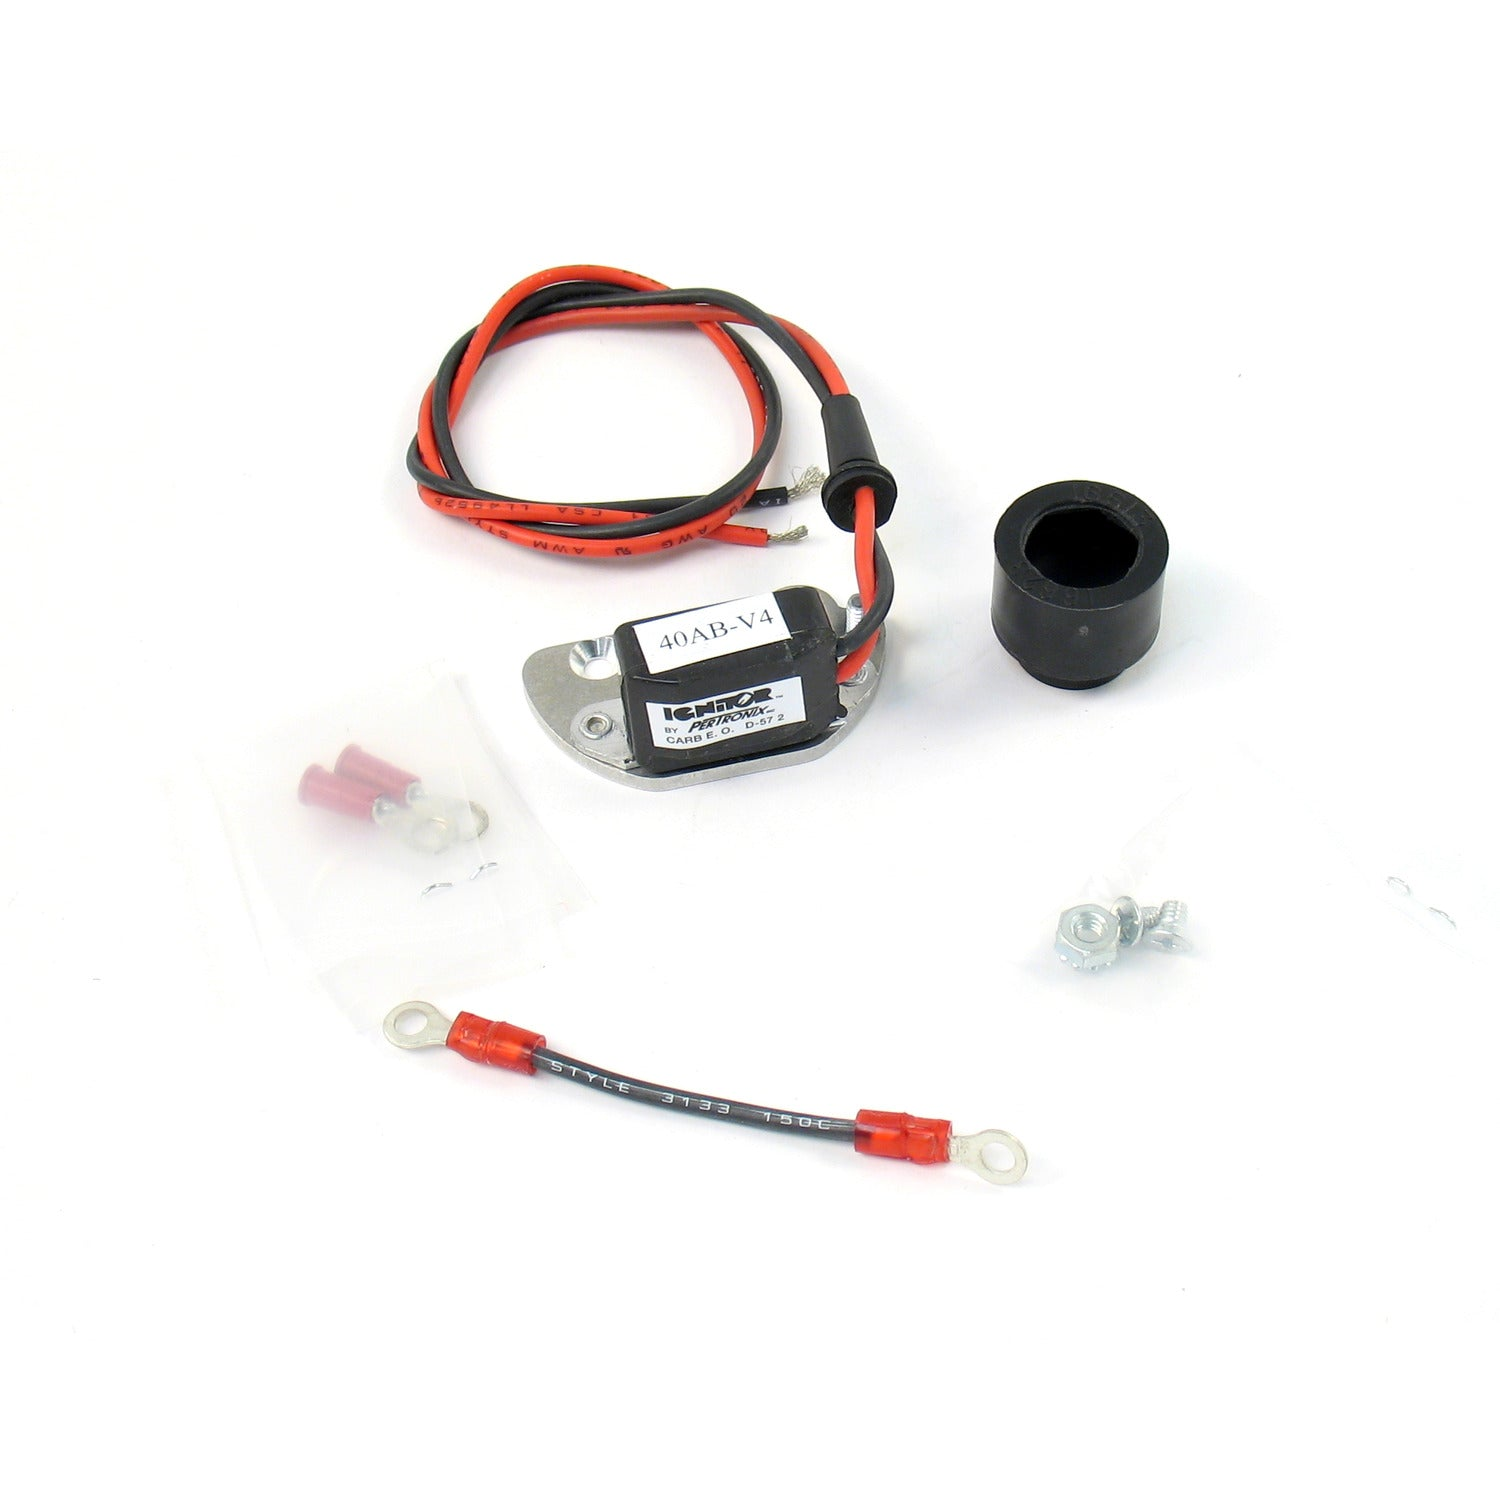 PerTronix 1661 Ignitor Toyota 6 cyl